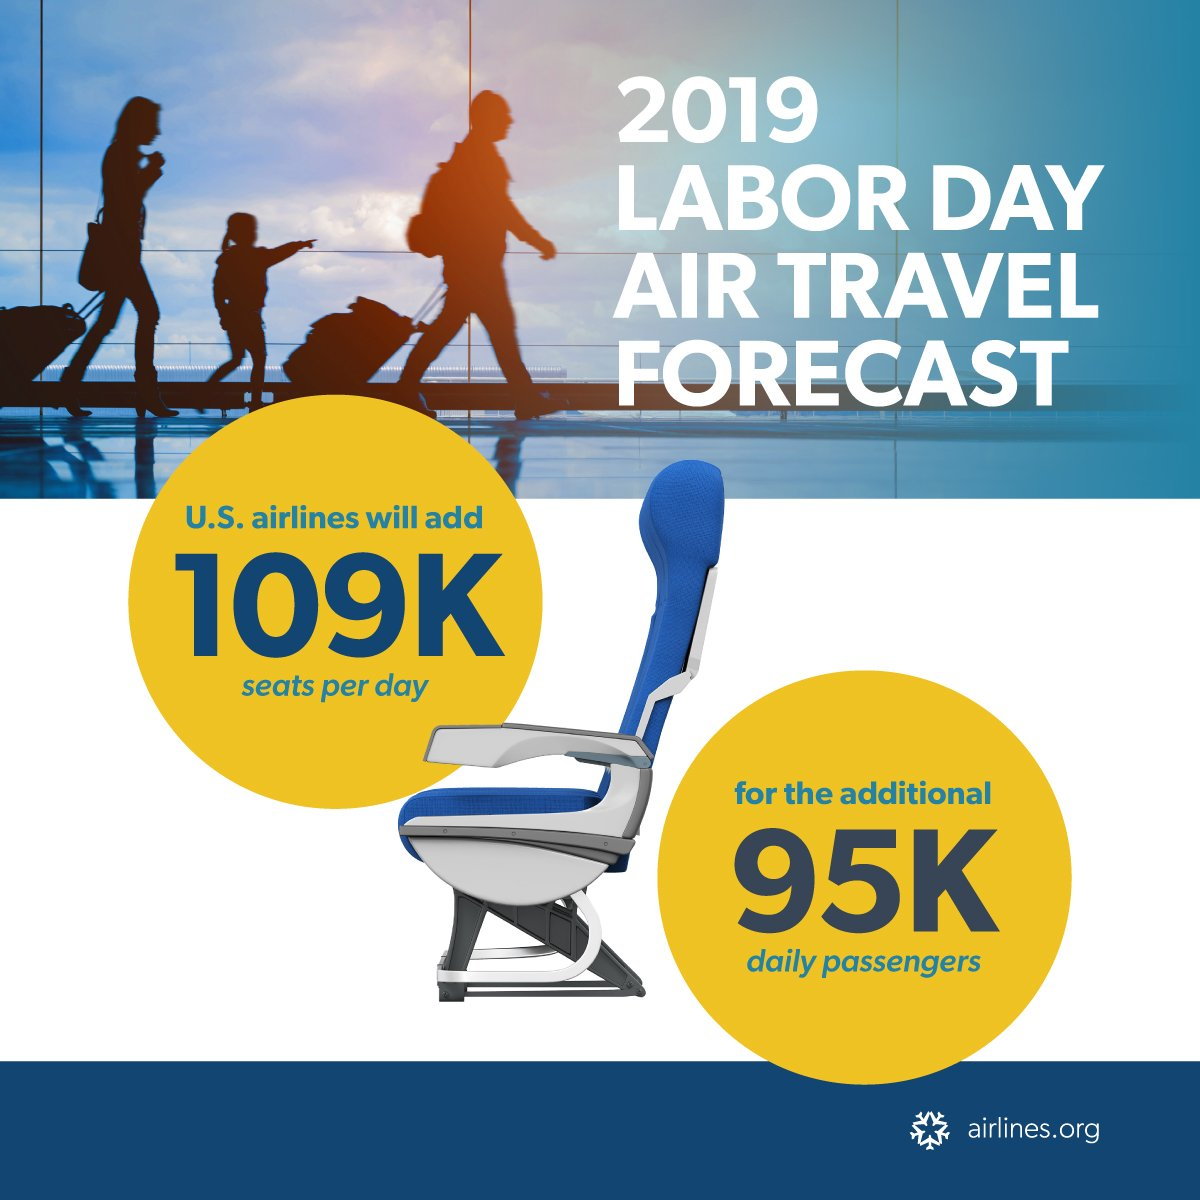 17.5 million passengers are expected to travel on U.S. airlines during the week-long #LaborDay travel period, representing a 4 percent increase from 2018. Read A4As full forecast here: bit.ly/2ZfqbW7